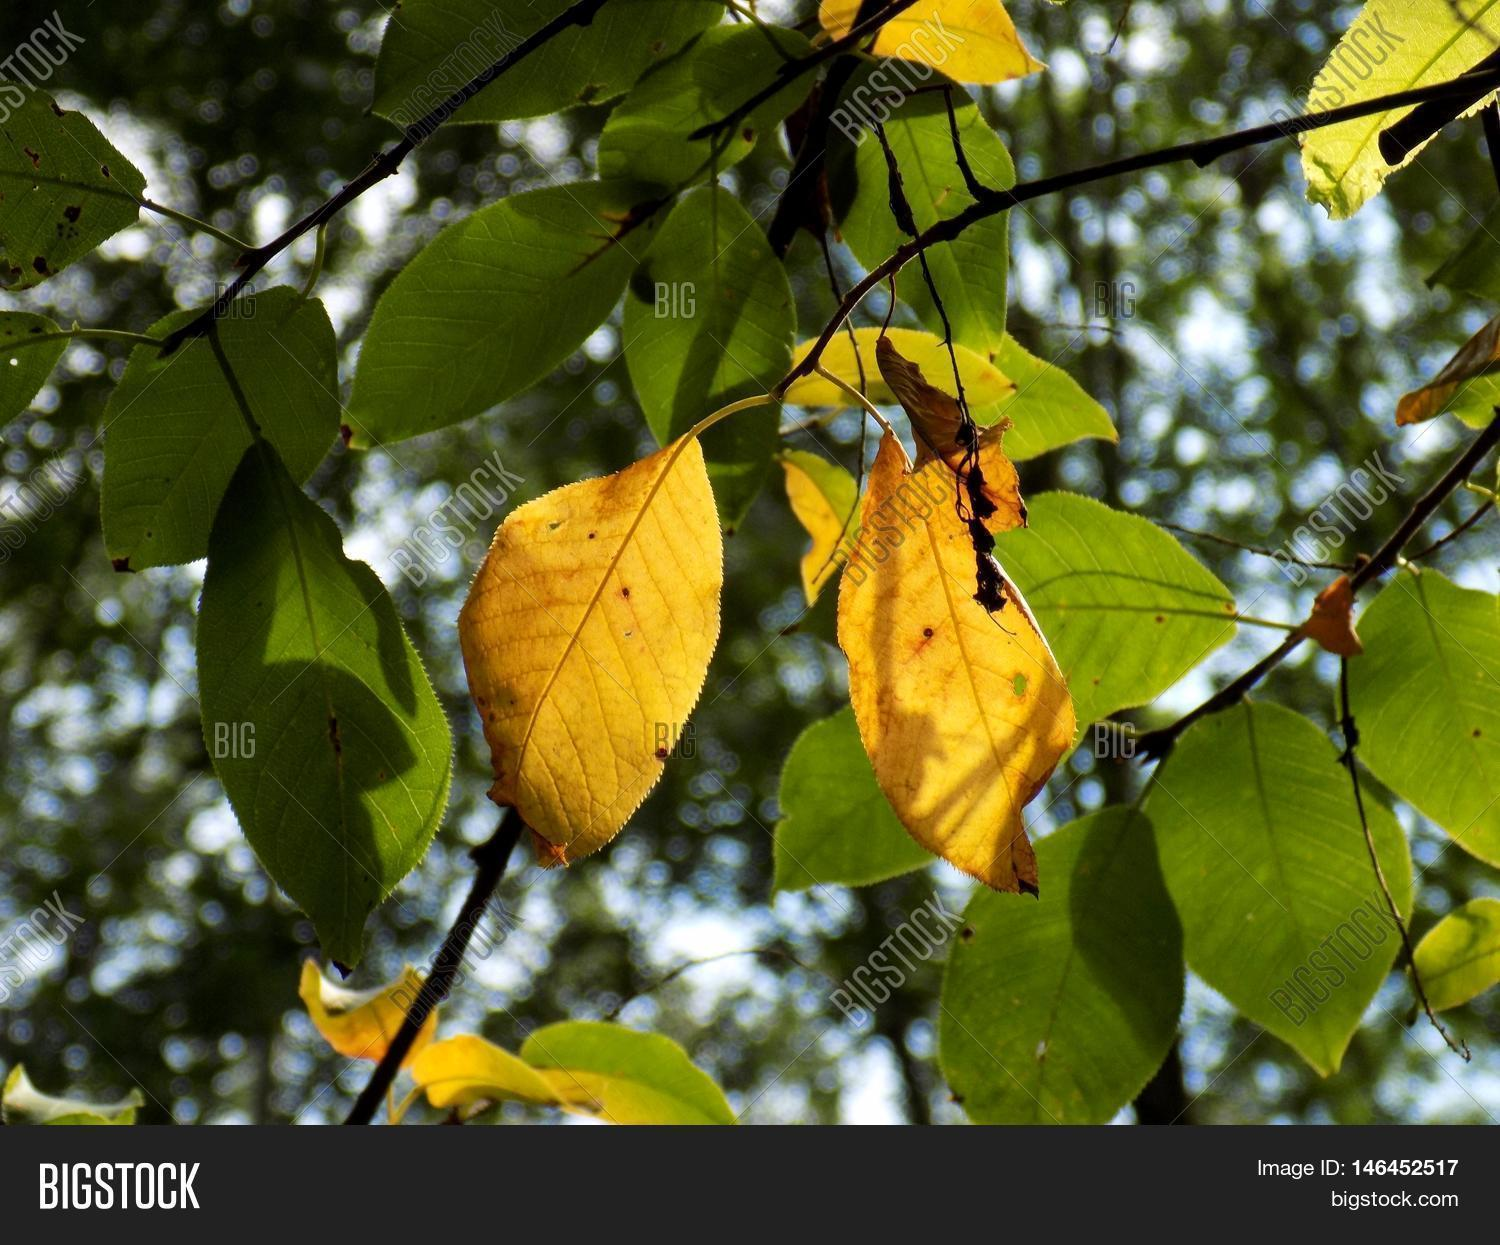 Green Changing Color Yellow Leaves Image & Photo | Bigstock